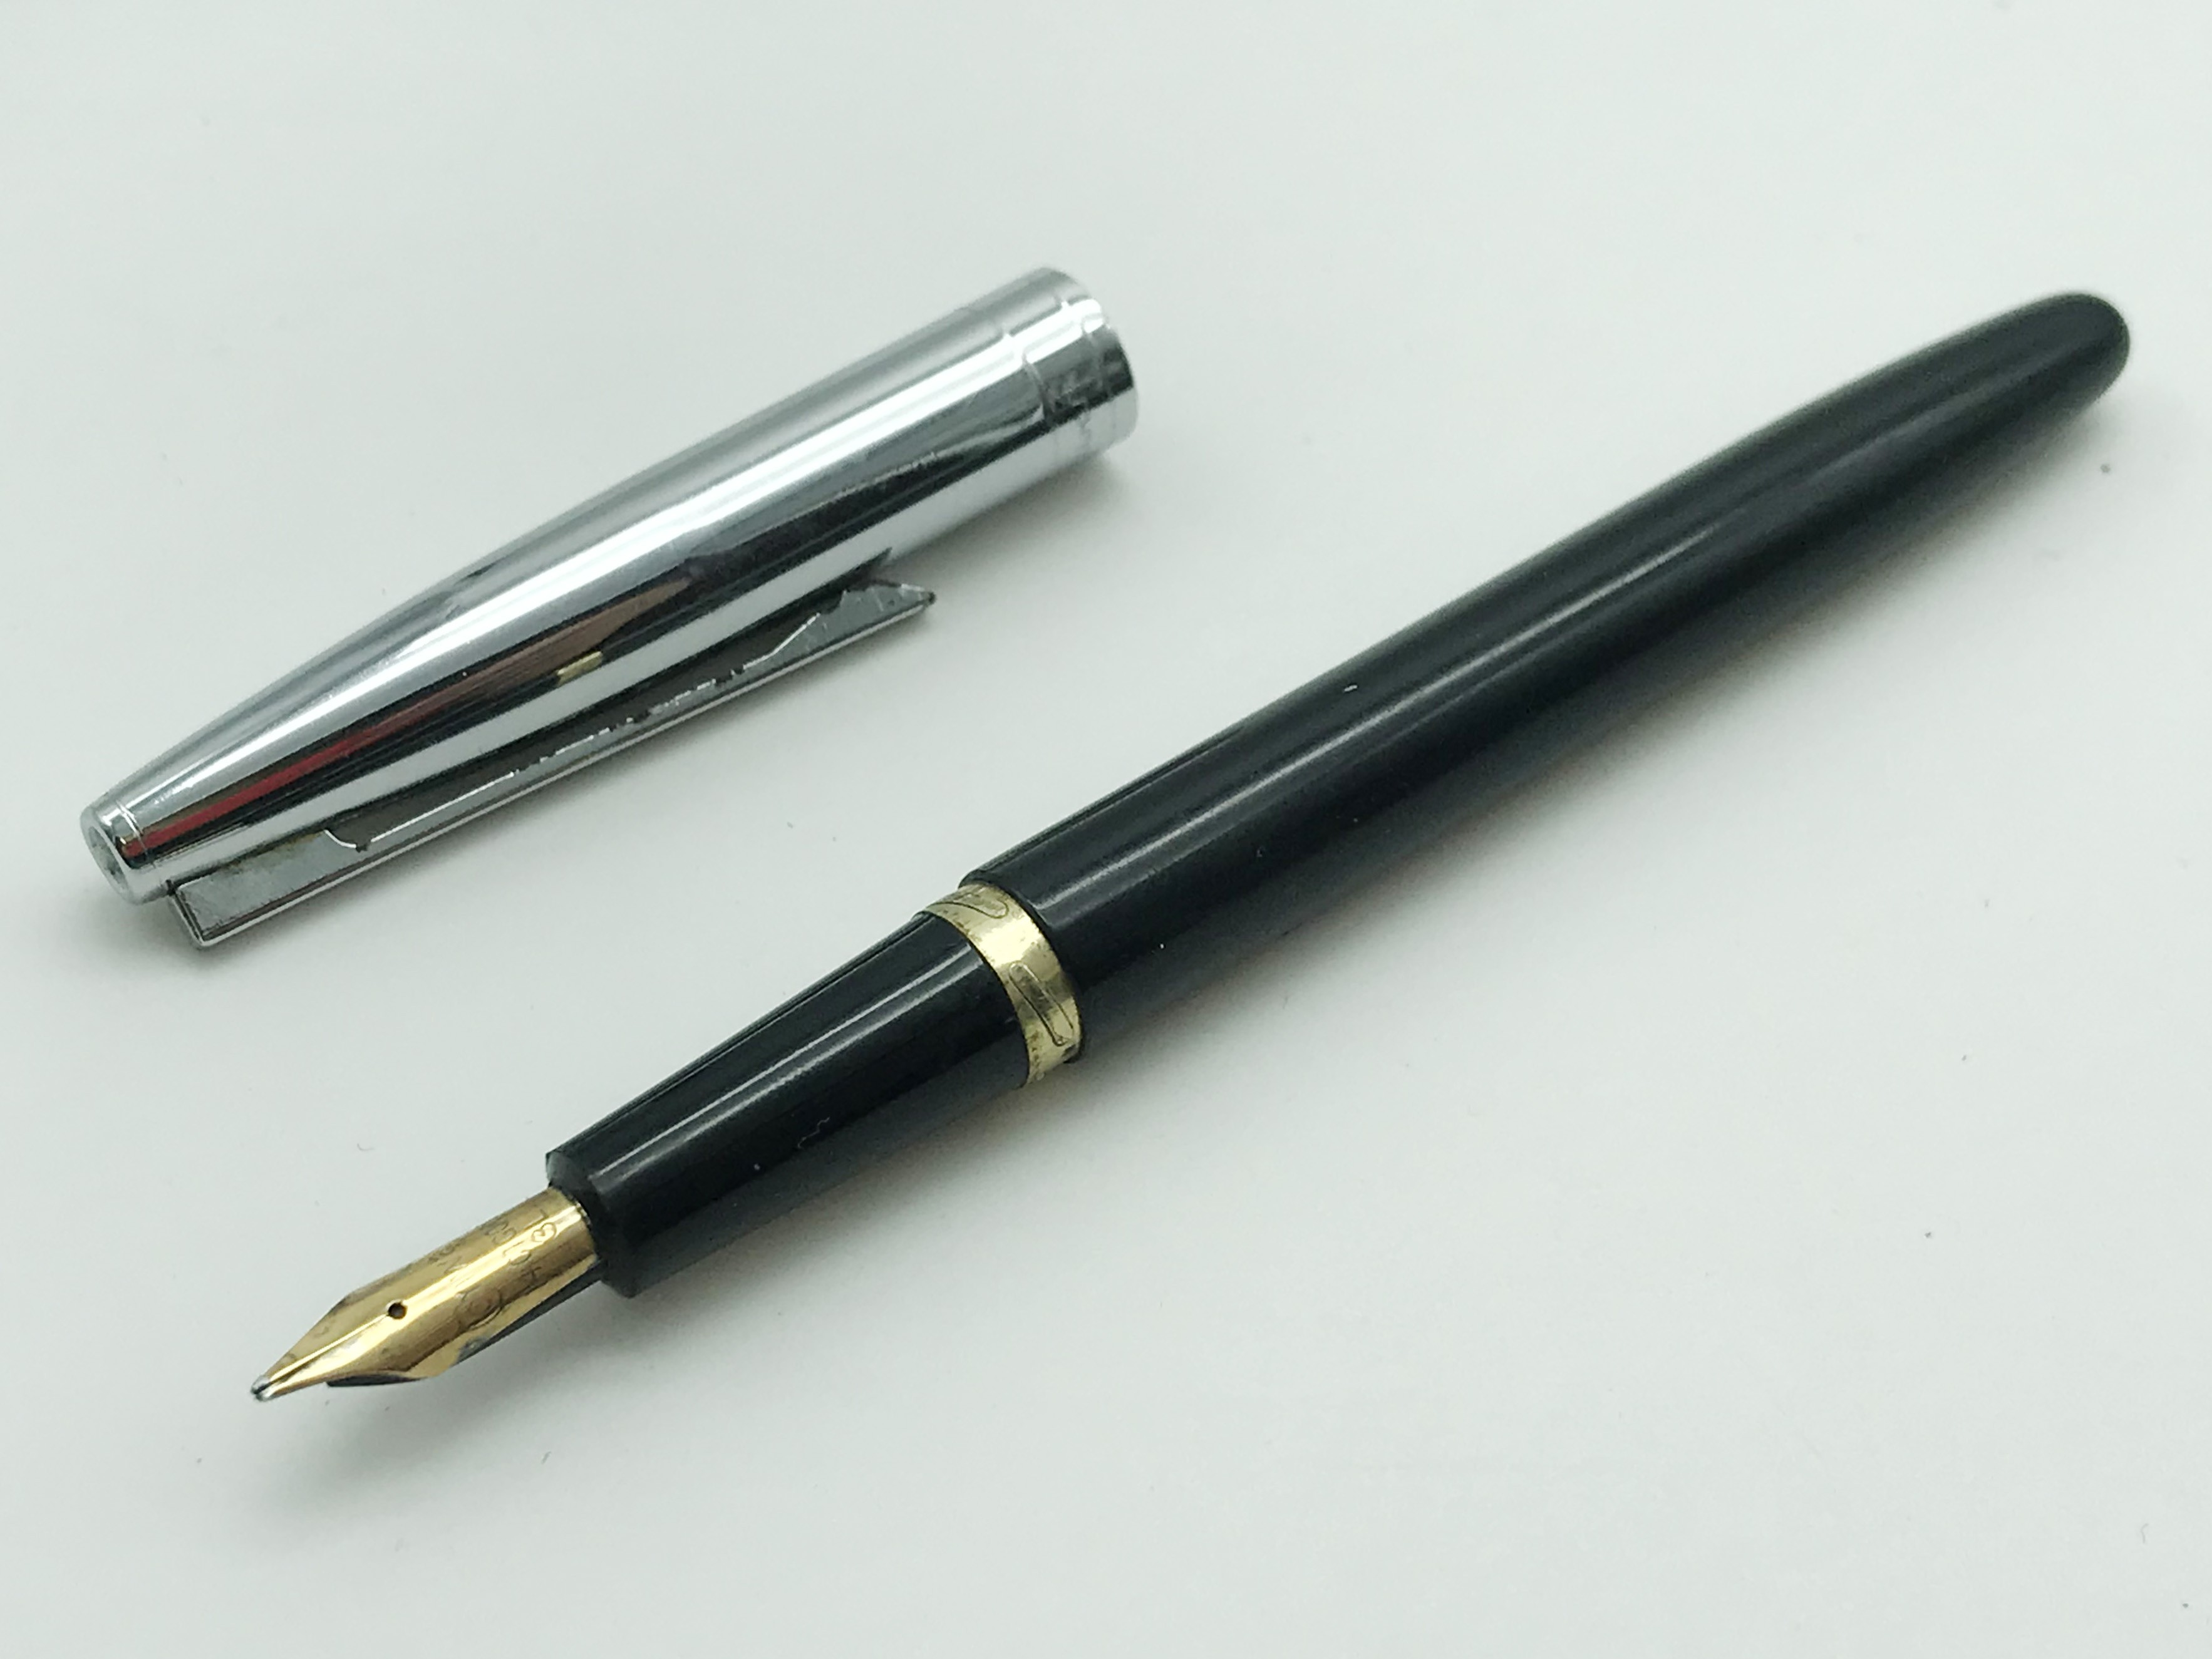 Lot 36 - SELECTION OF OLD PENS WITH GOLD NIBS